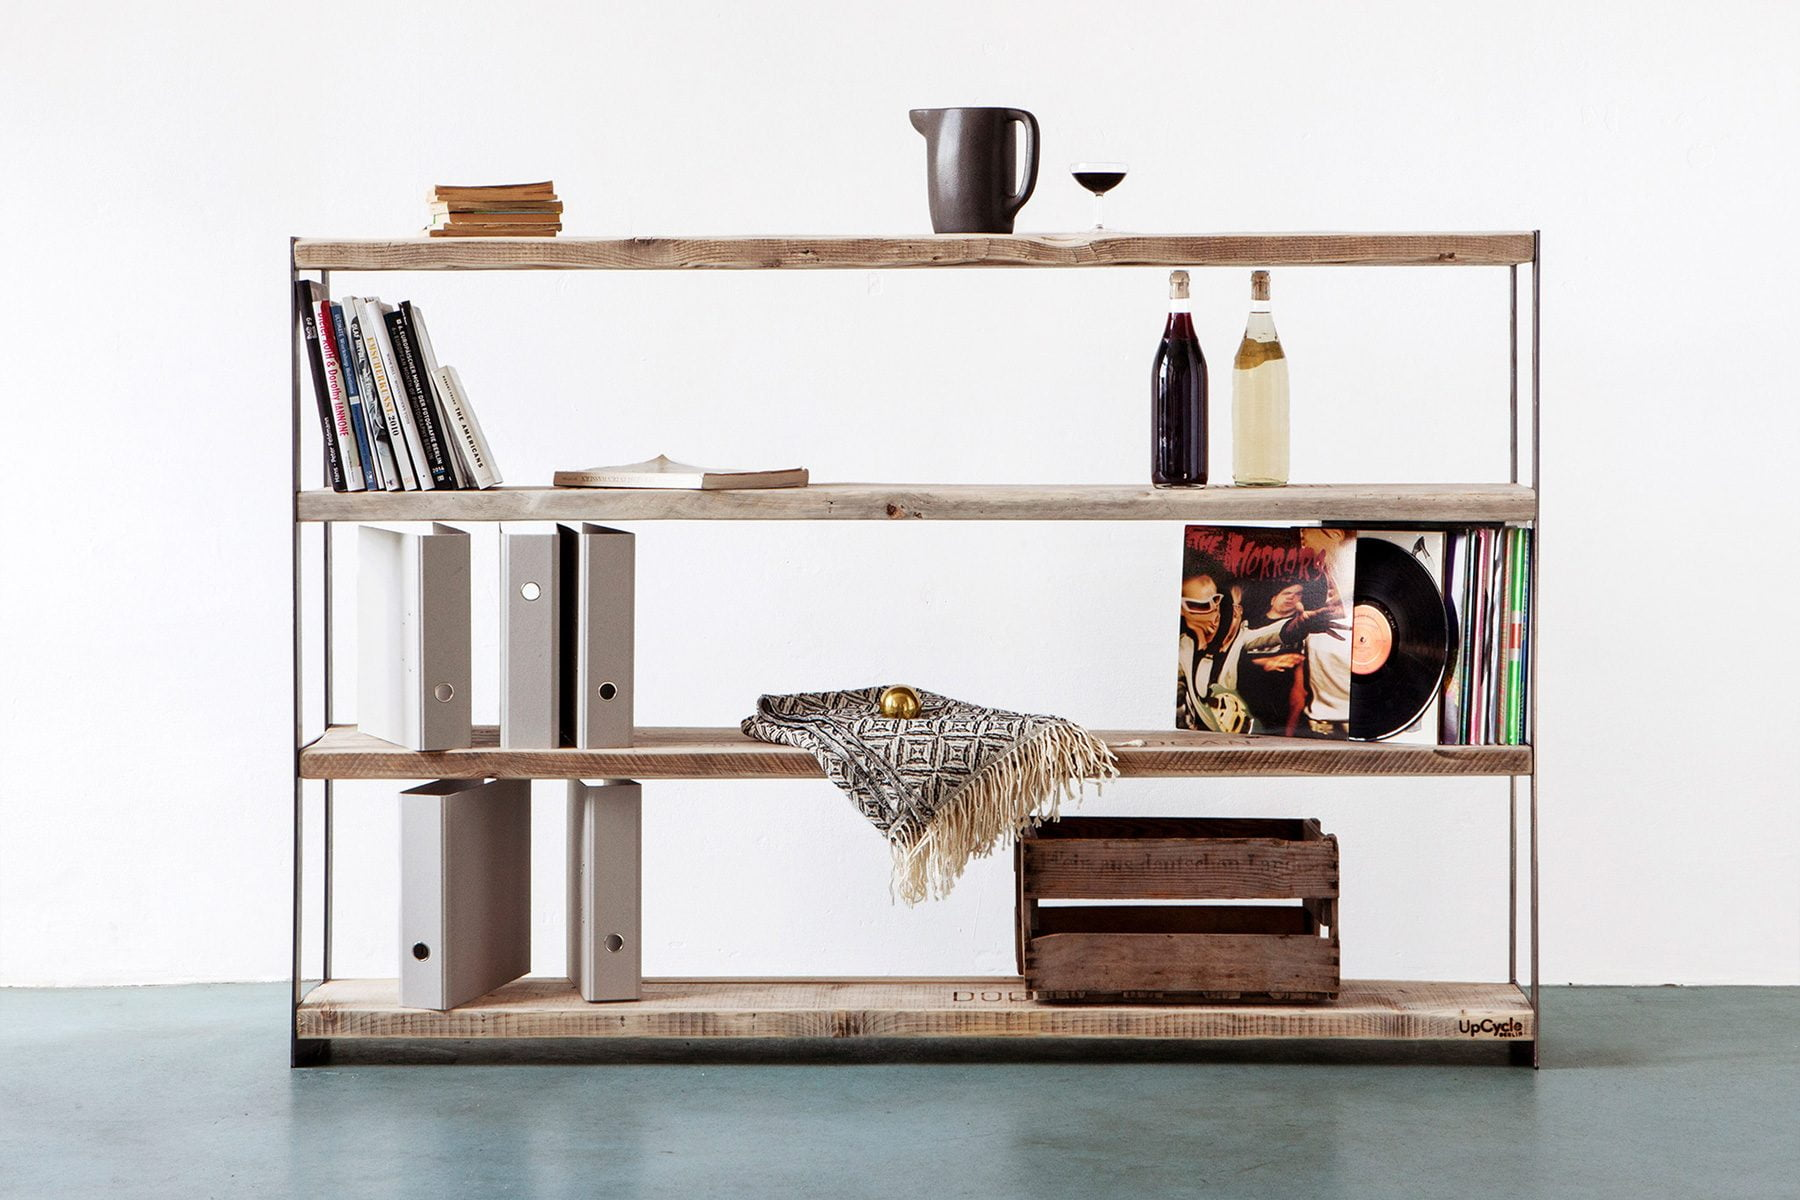 UpCycle-Berlin-PALINDROM-Sideboard-STORE-Industrial-Design